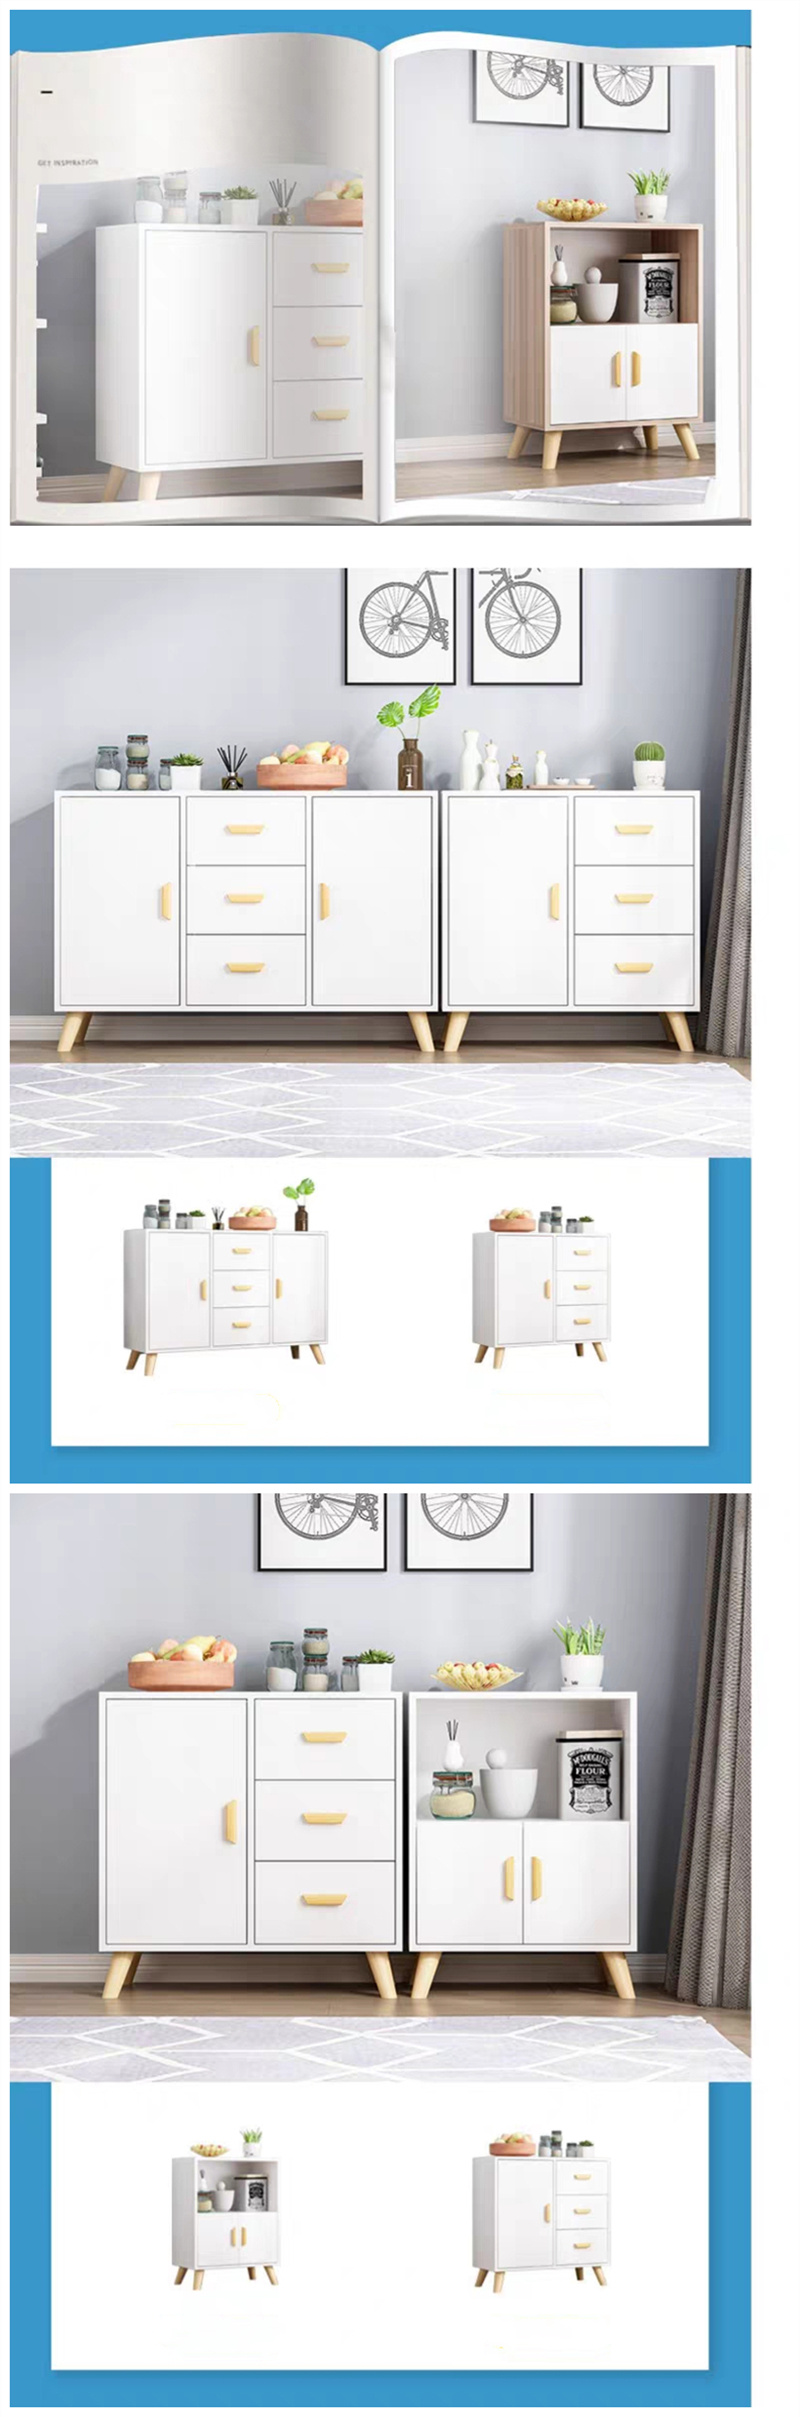 Chinese Furniture Wooden Legs Light Color Melamine Drawer Book Shelf Kitchen Cabinets China Furniture Modern Furniture Made In China Com